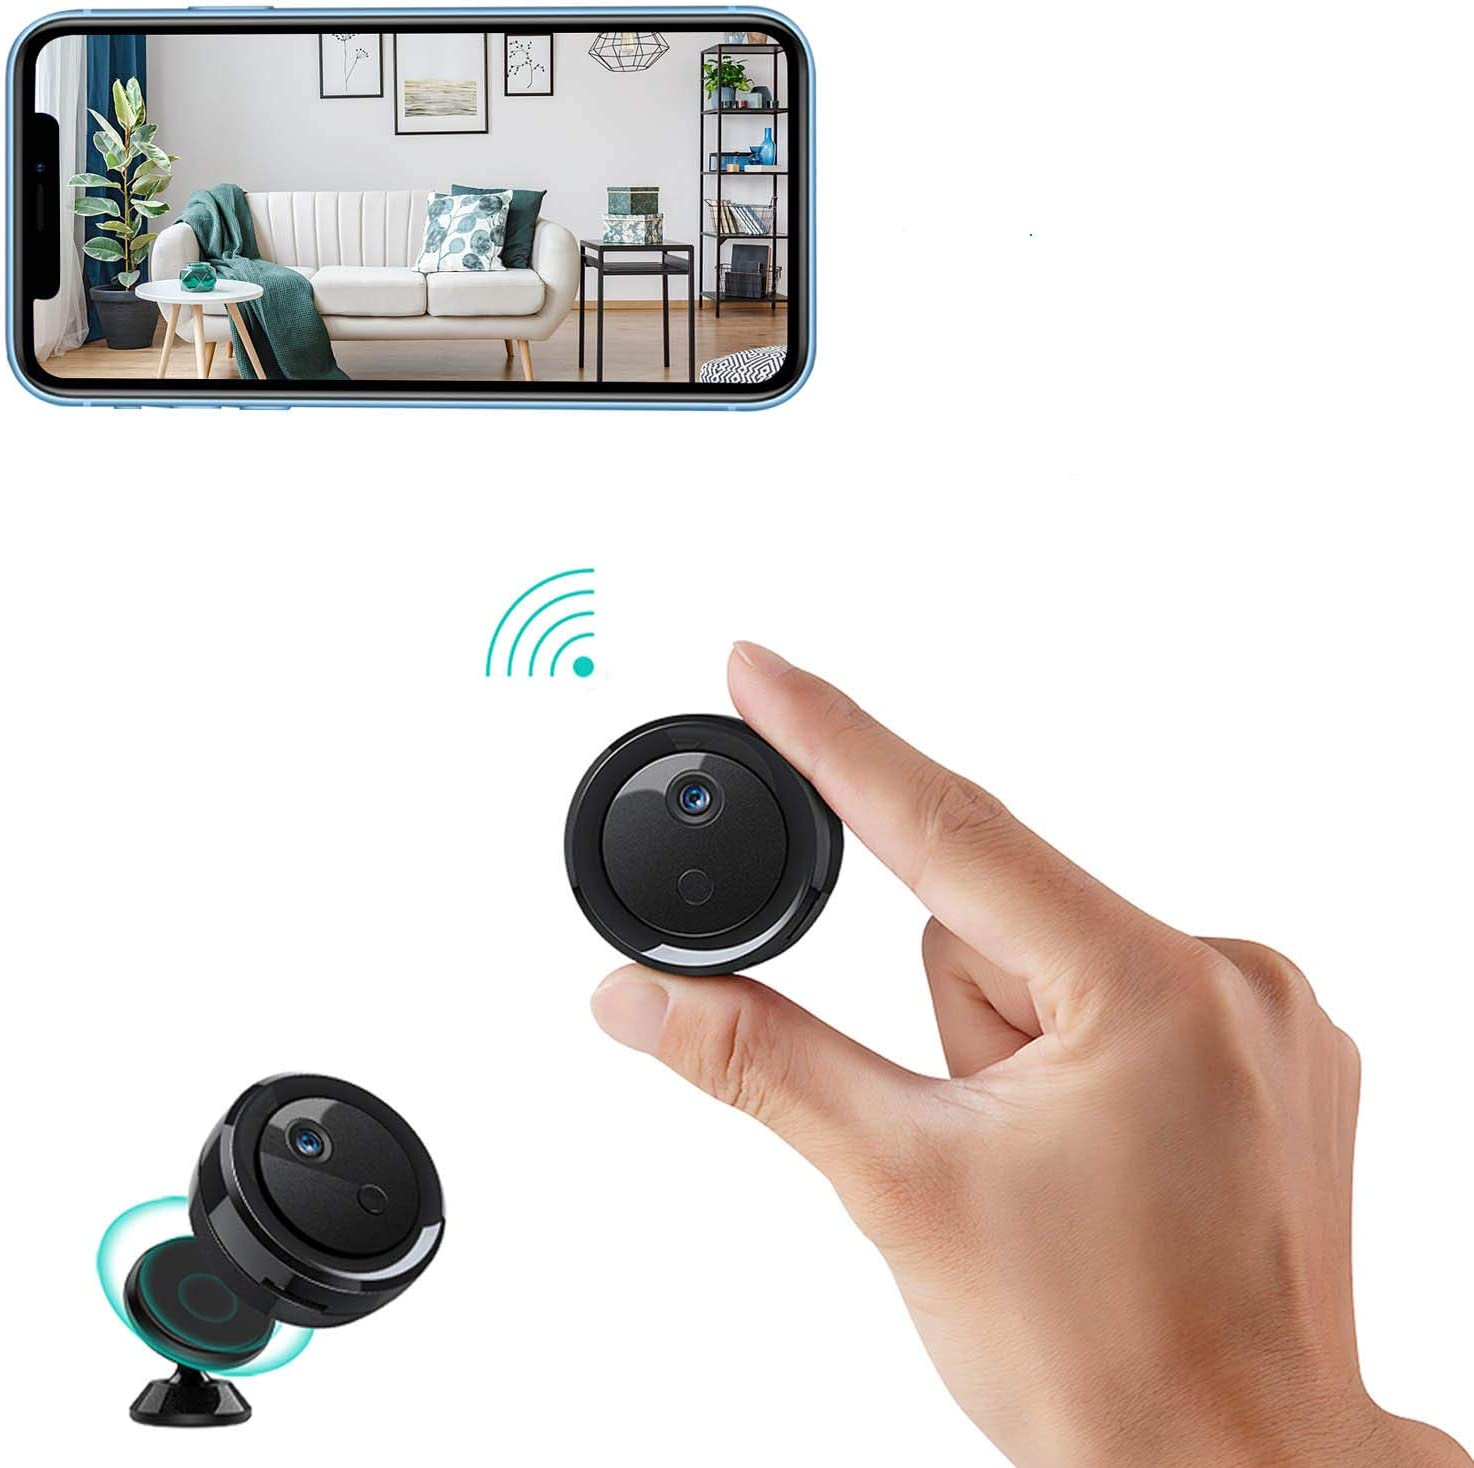 Spy Camera Hidden Wireless Camera WiFi Mini HD 1080P Portable Home Security Cameras Covert Nanny Cam Small Indoor Outdoor Video Recorder Motion Activated Night Vision (Black)